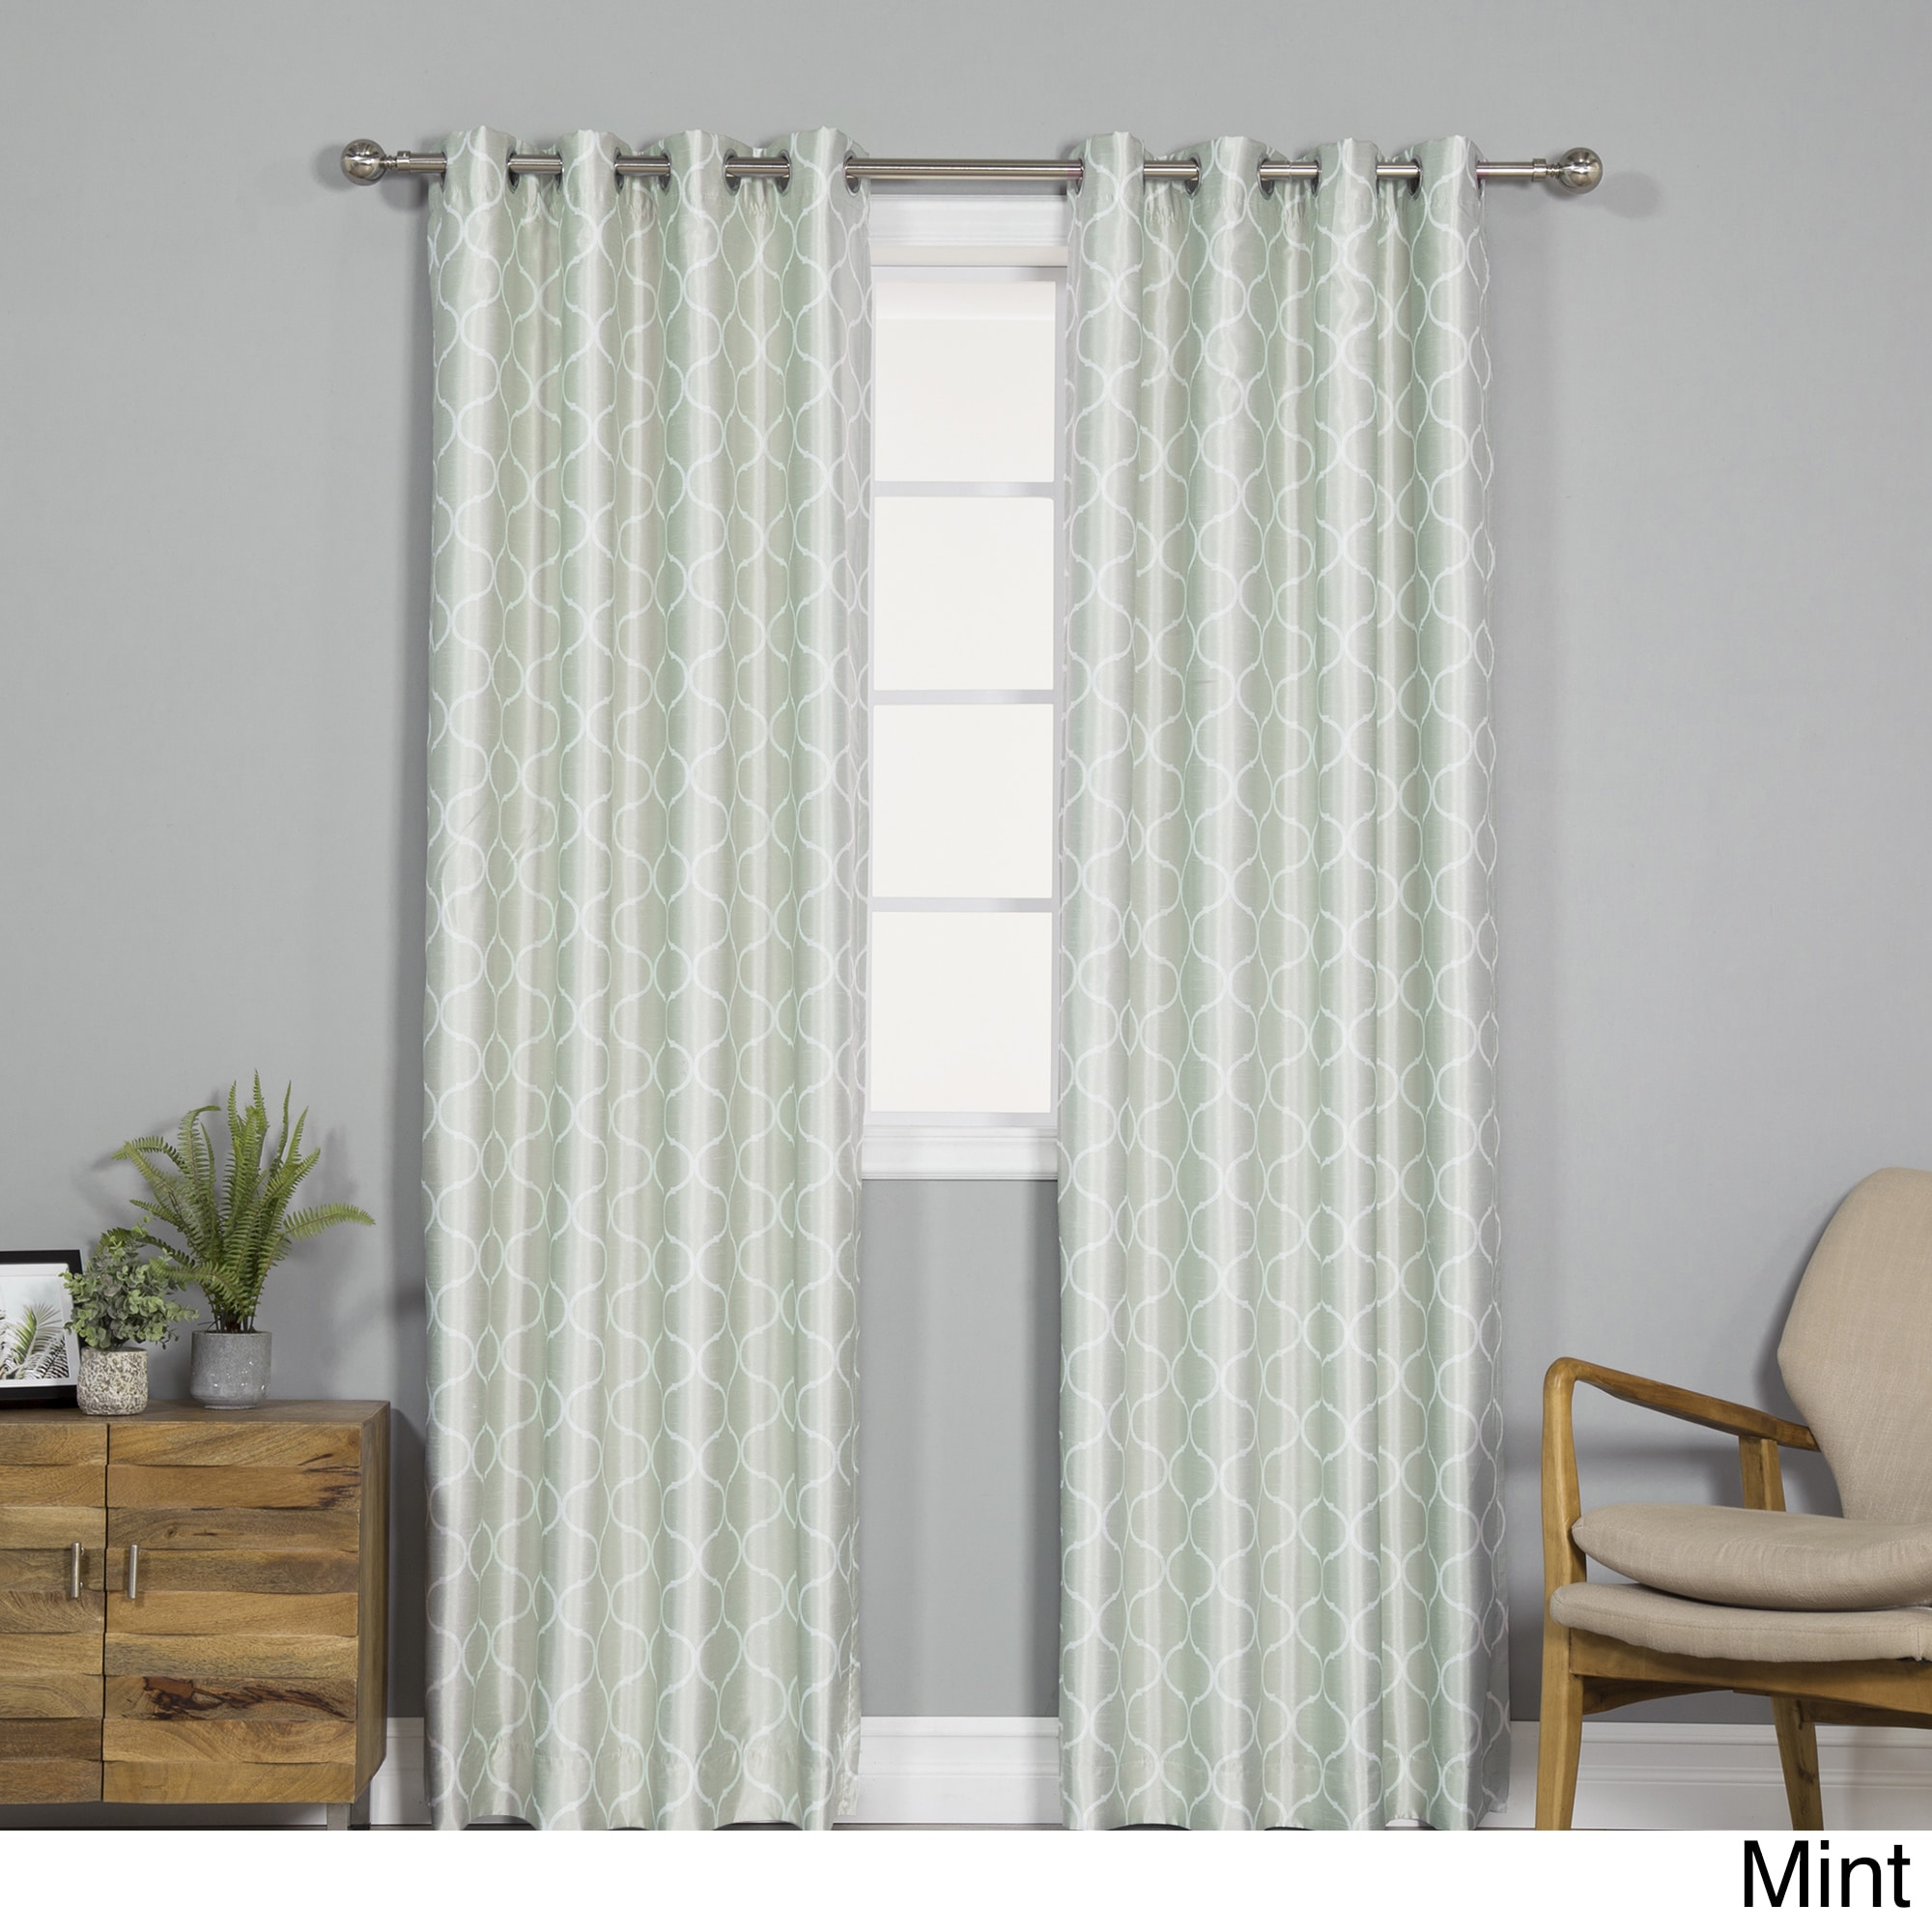 faux inspiration sweet flower treatment living decors floors wooden hang white added painted creamy heavenly curtain room laminate bar also curtains drapes orange double silk modern wall bench bronze covering snazzy over window in on